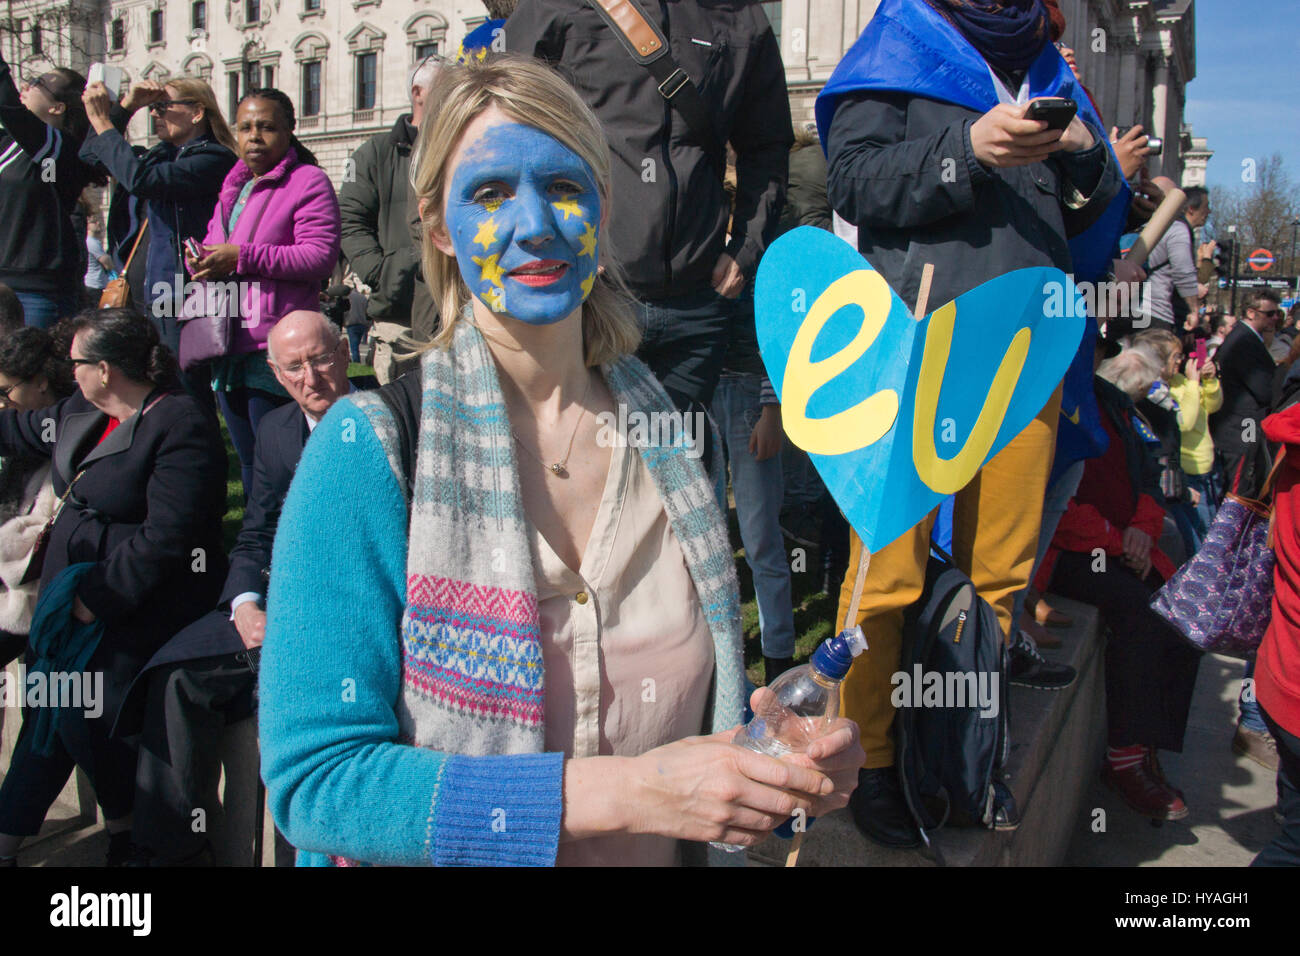 """London, UK. 25th Mar, 2017. EU supporters at Parliament Square. Thousands march in Central London to """"unite for Stock Photo"""